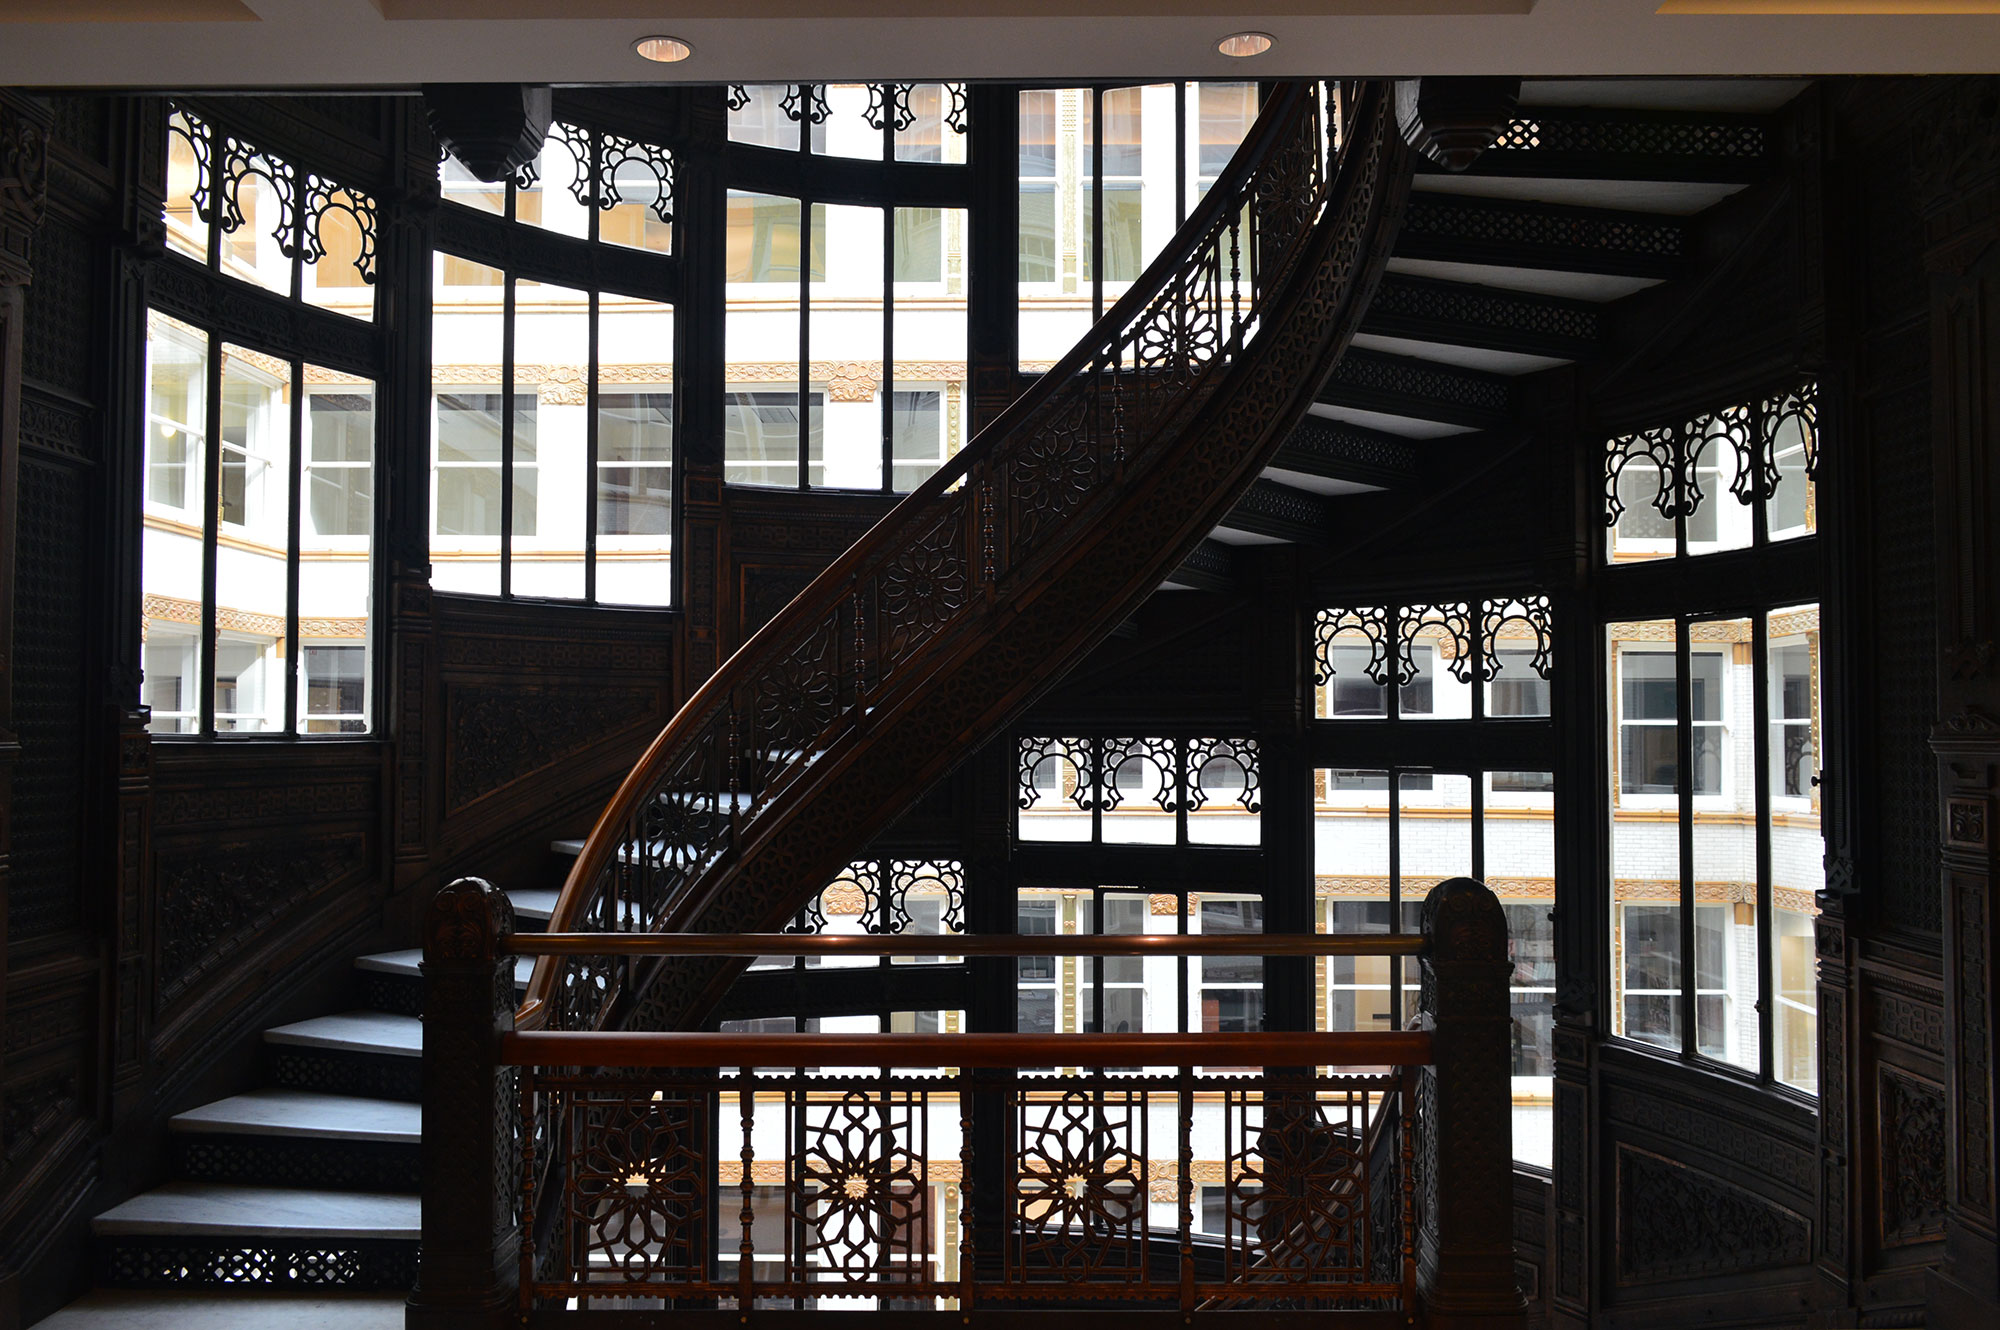 Staircase at the Rookery Building